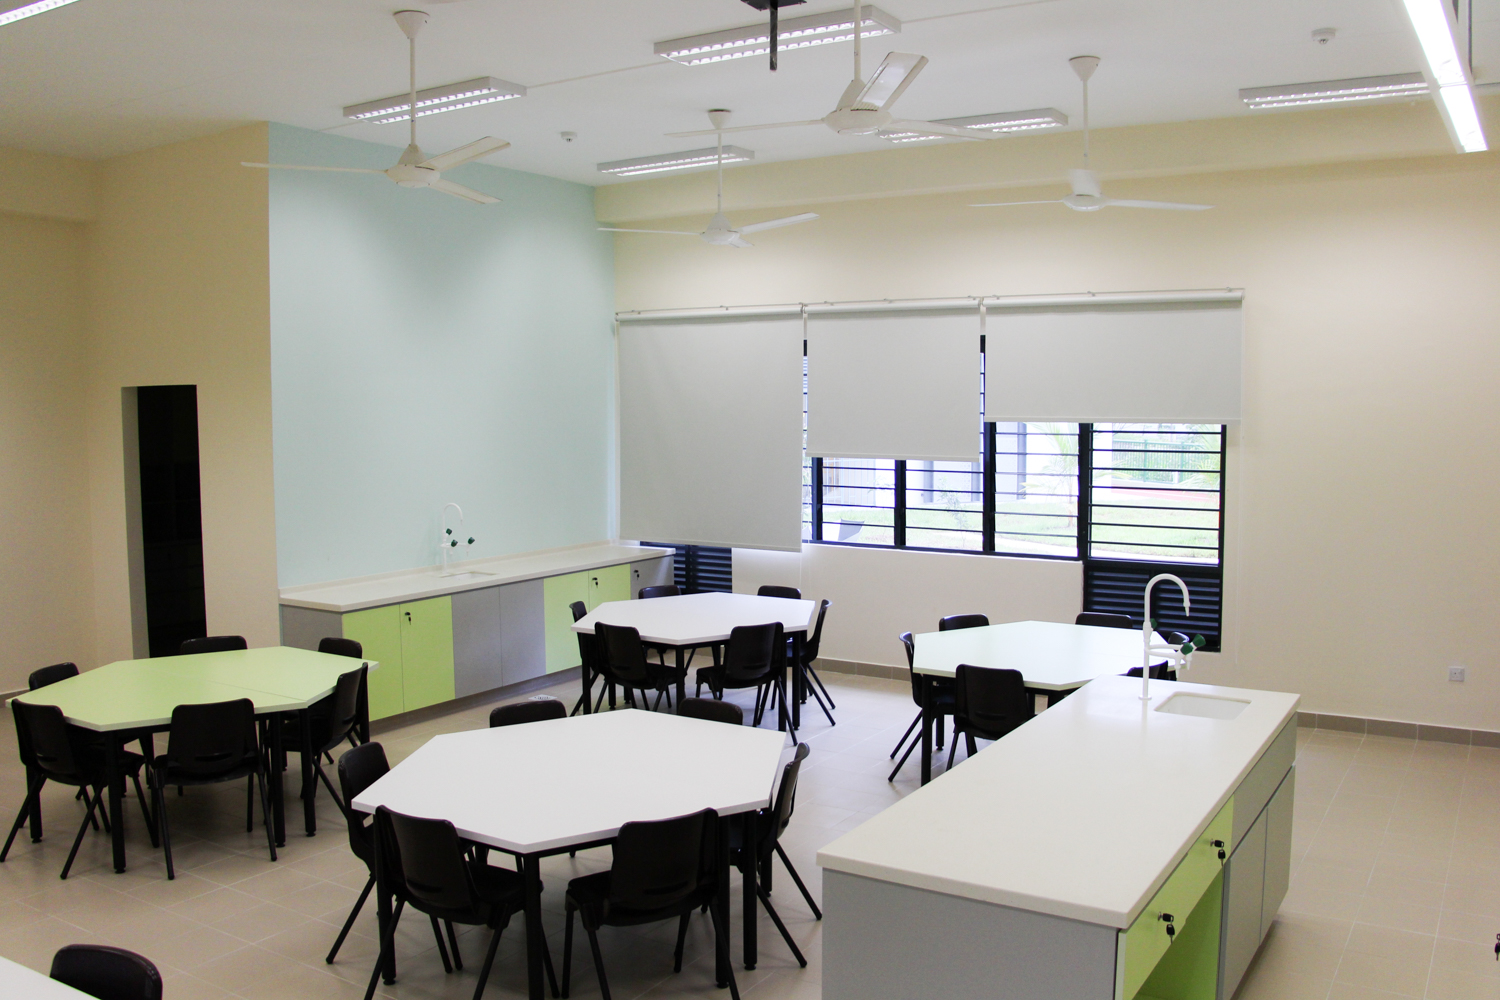 Image of Science room